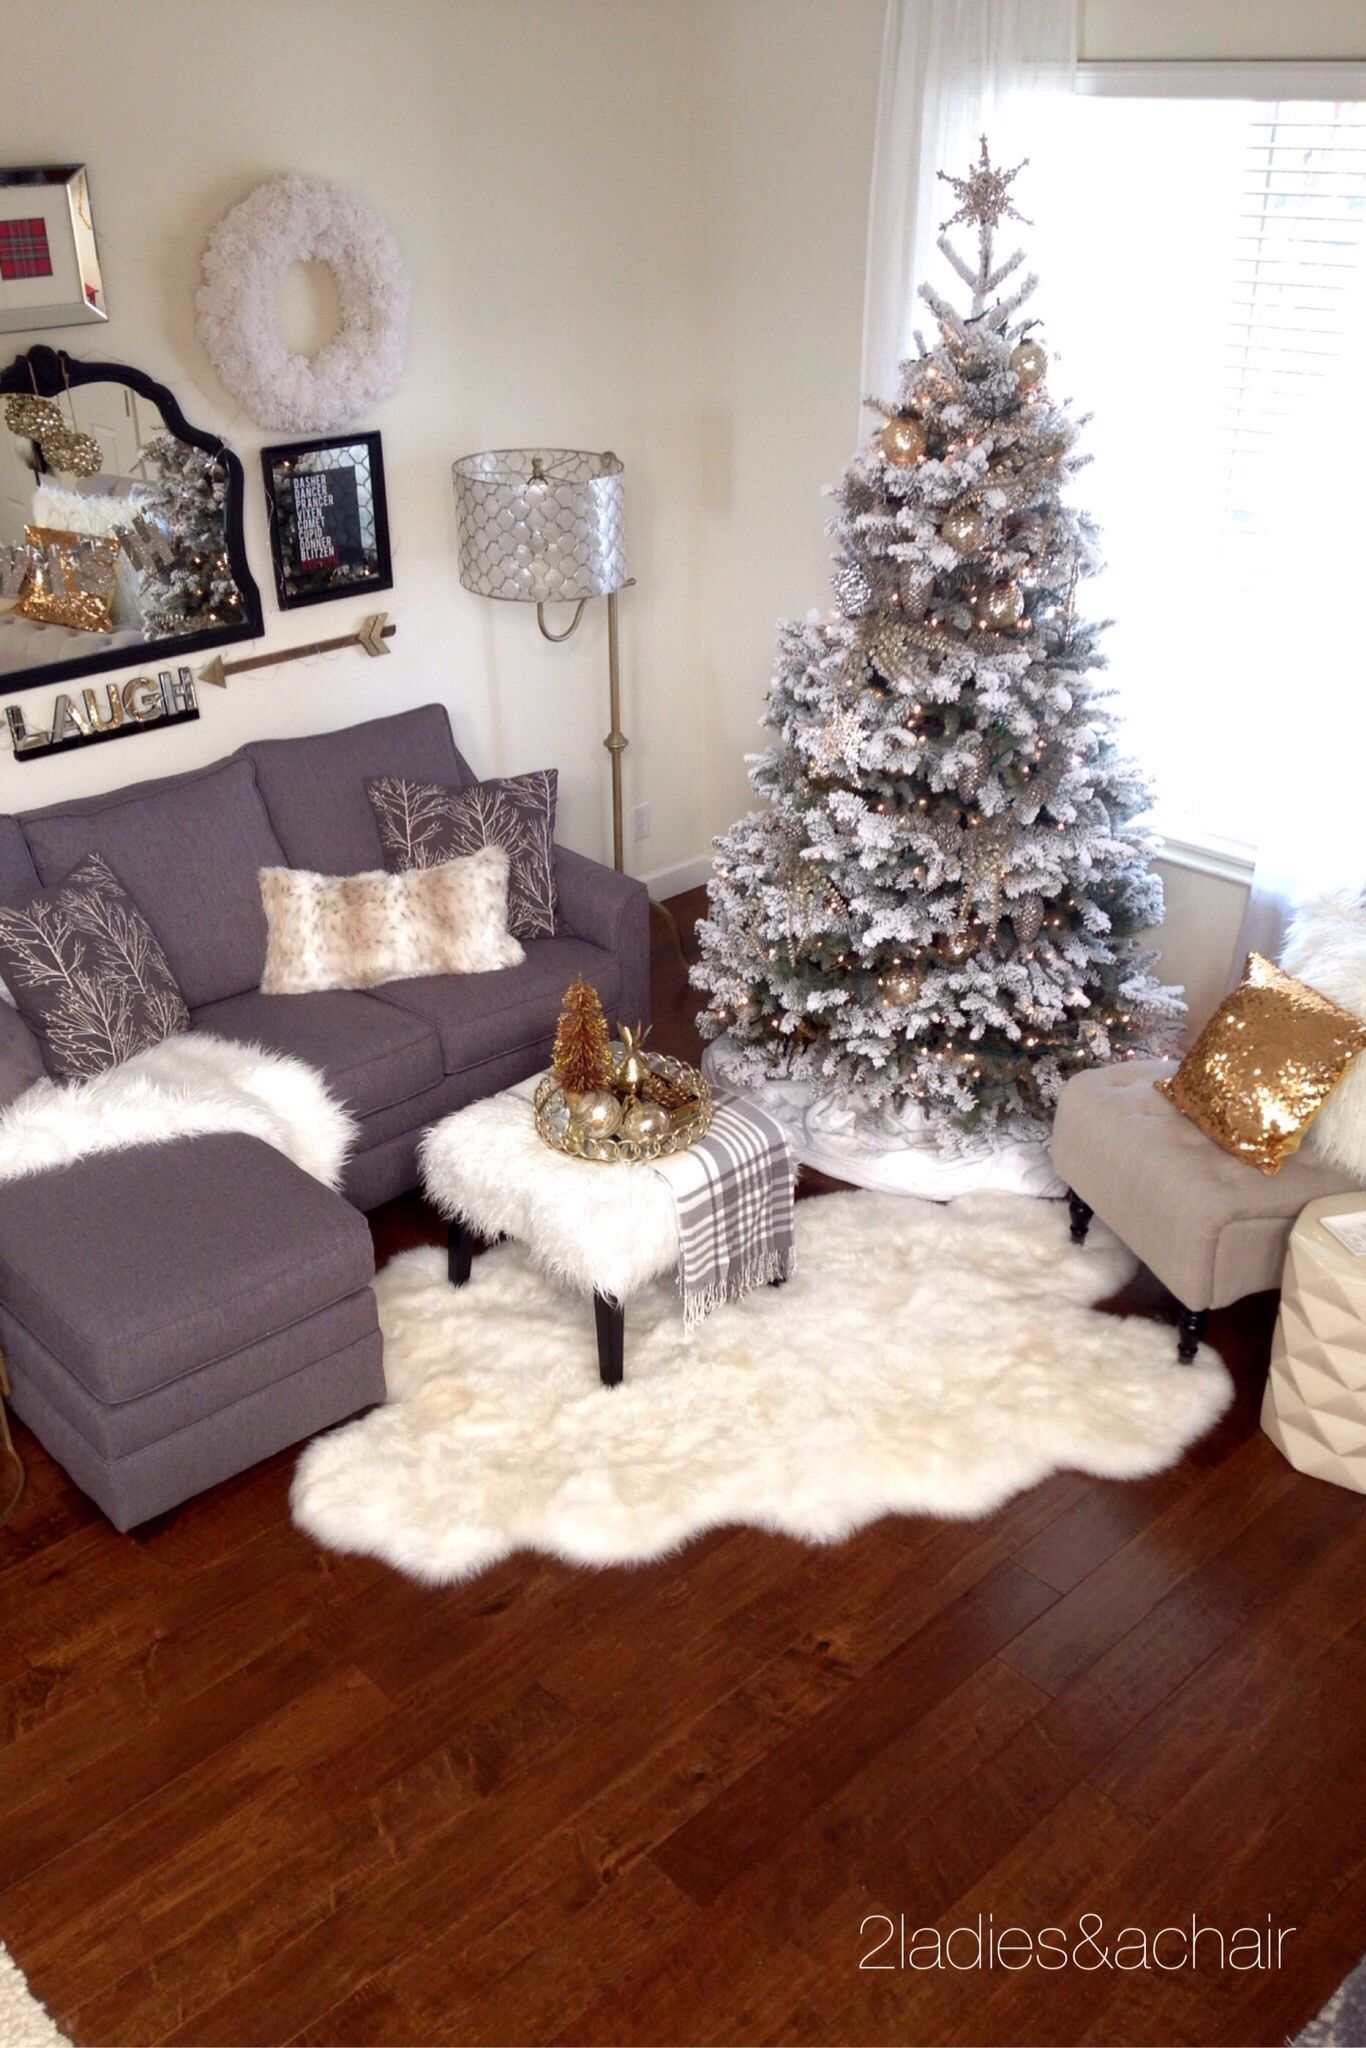 2 Ladies A Chair Christmas Decorations Living Room Christmas Apartment Christmas Living Rooms